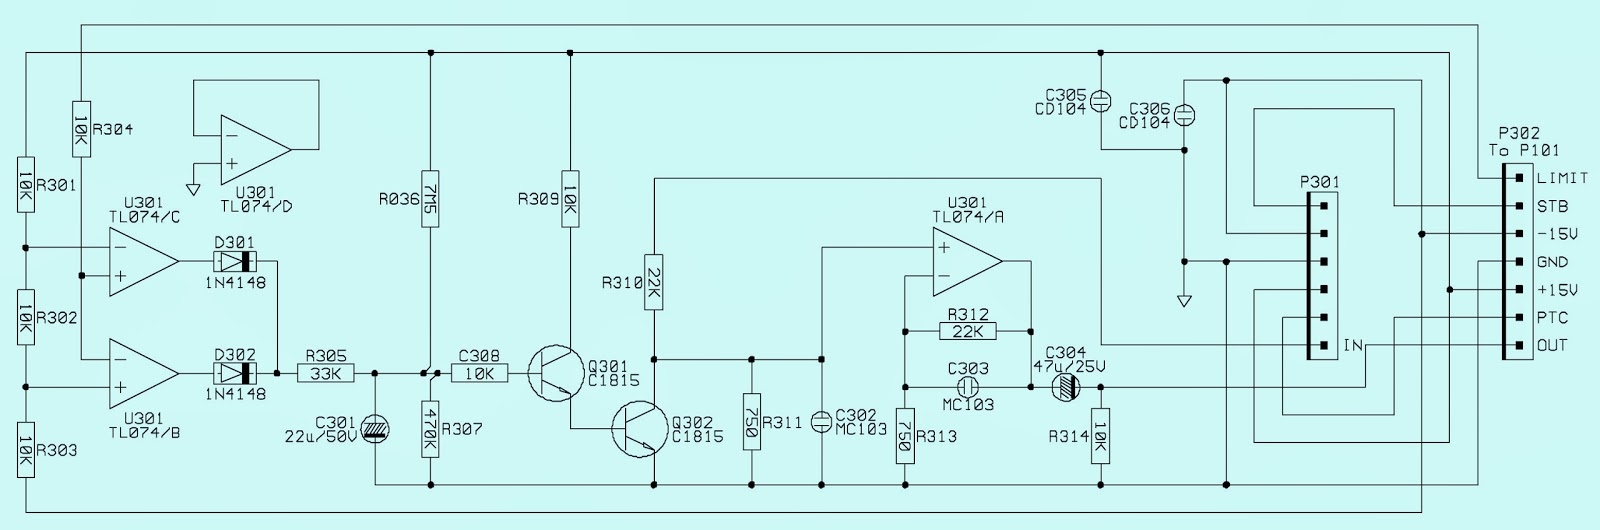 hight resolution of jbl sub 135s cinema propack 600 amp subwoofer schematic cinema propack600 ampsubwoofer schematic circuit diagram